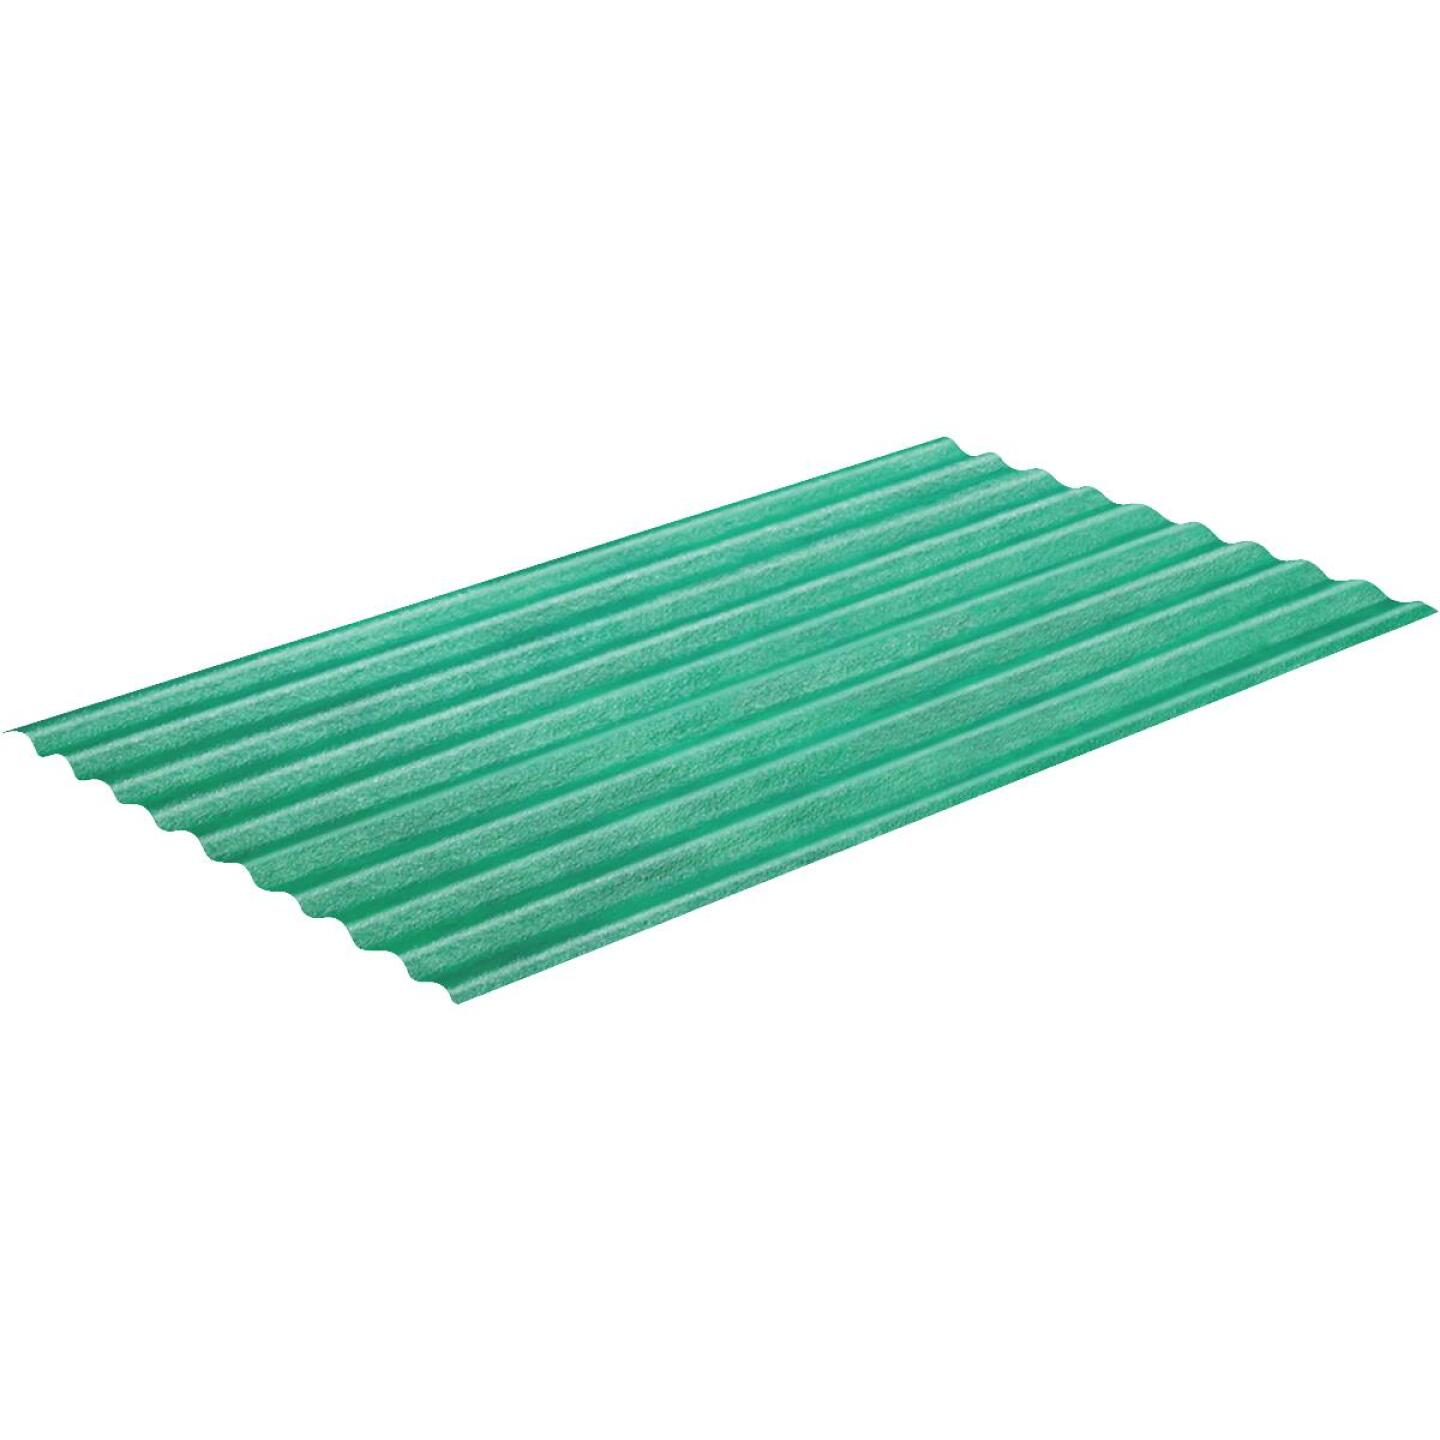 Sequentia WeatherGlaze 26 In. x 8 Ft. Green Round 1-Sided Fiberglass Corrugated Panels Image 1